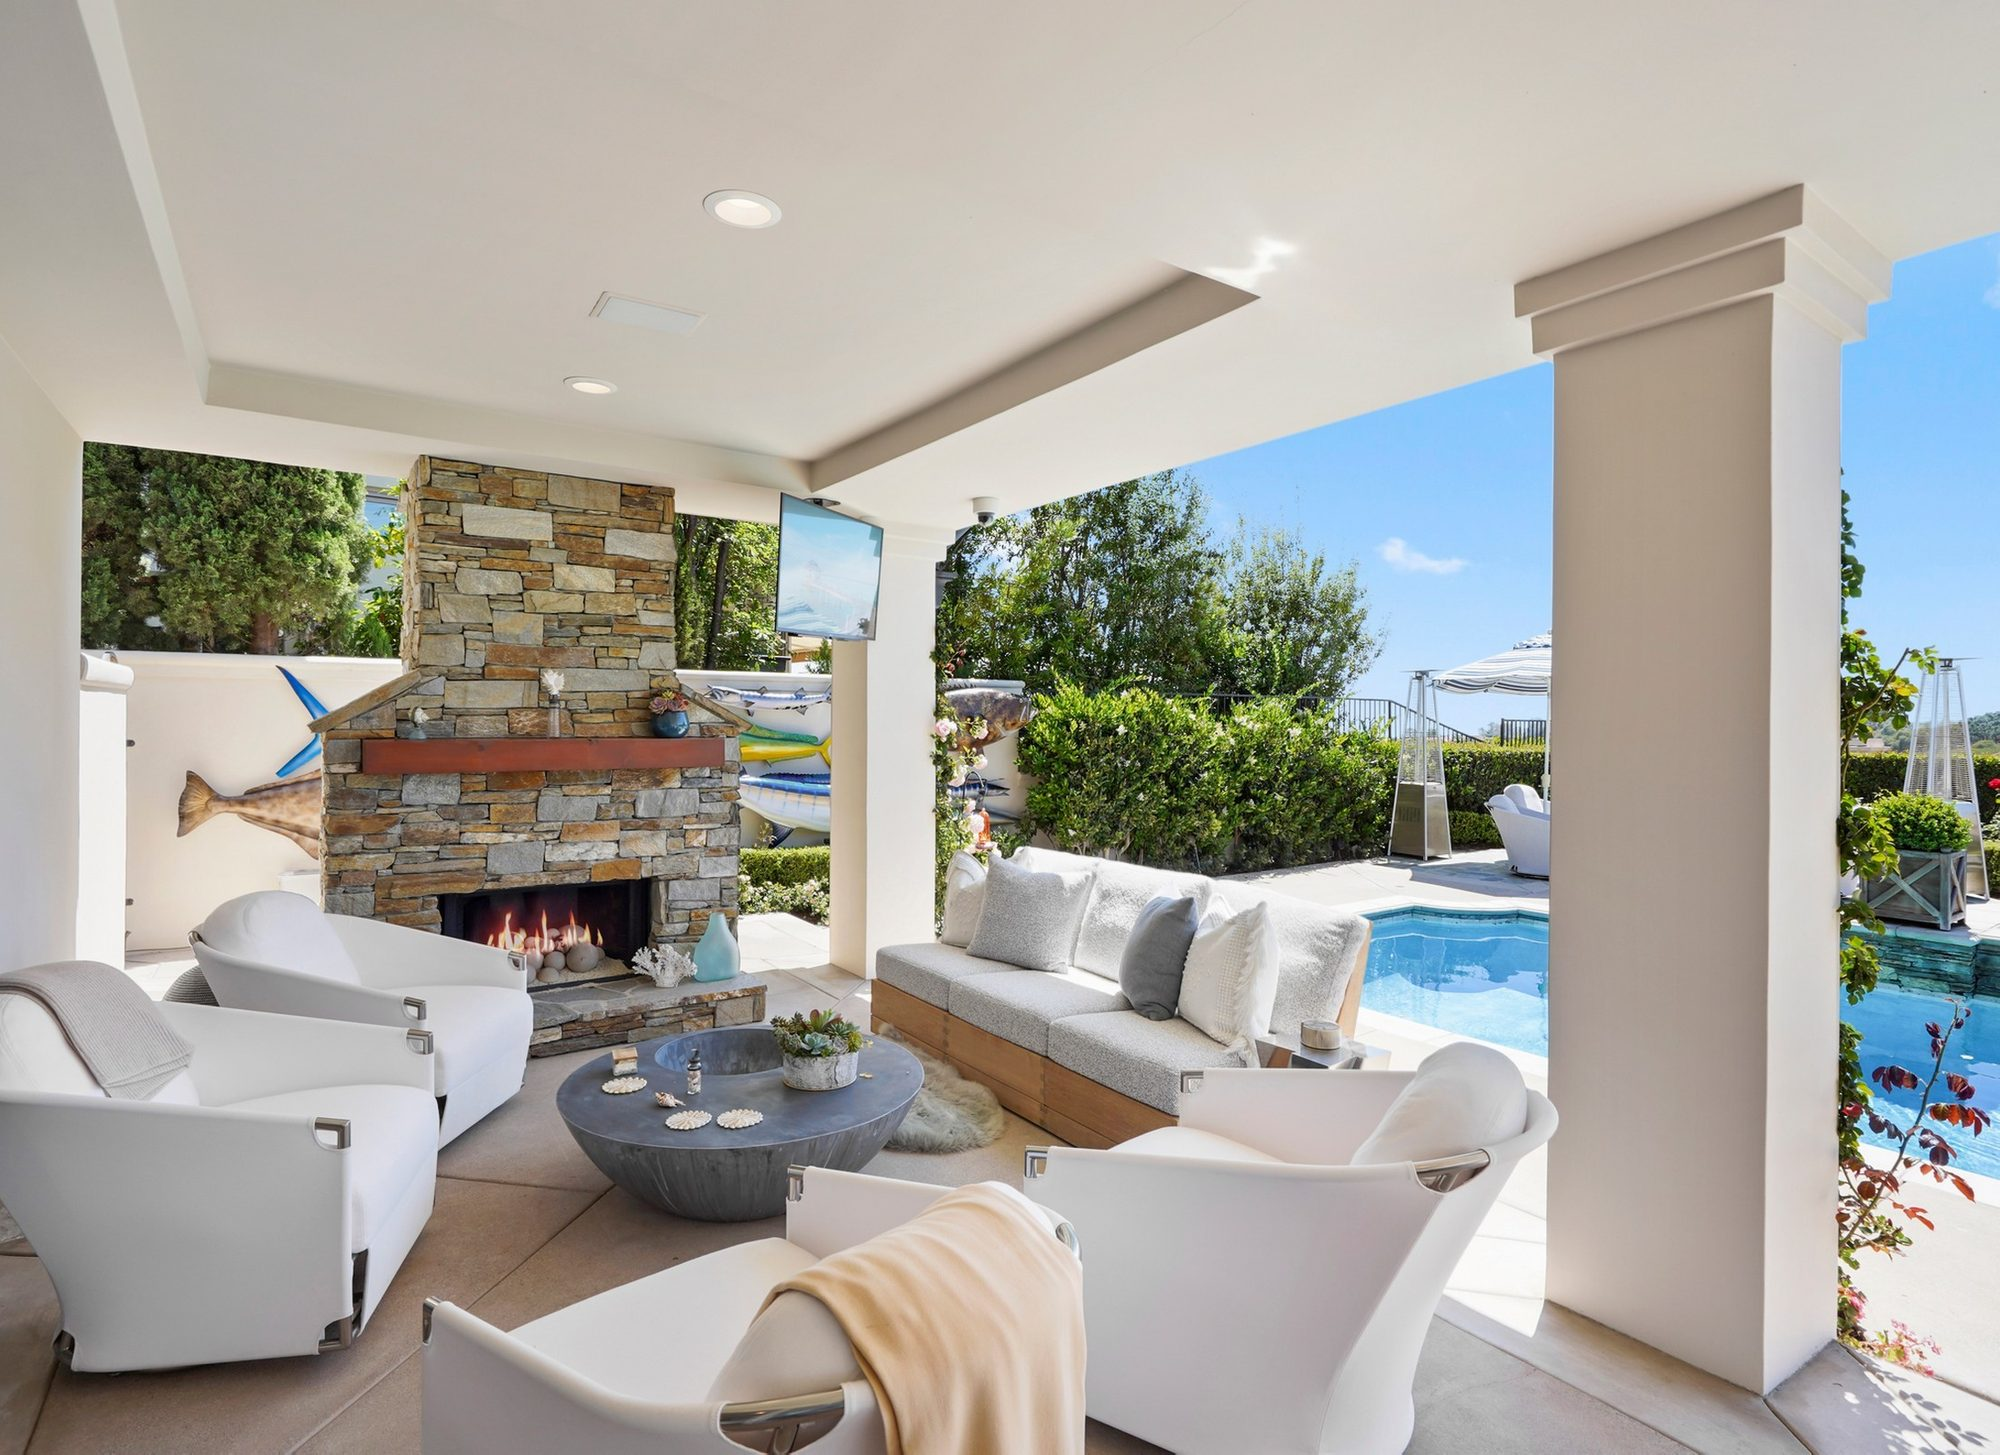 Beautiful poolside covered patio with outdoor furniture set and built in gas fireplace.